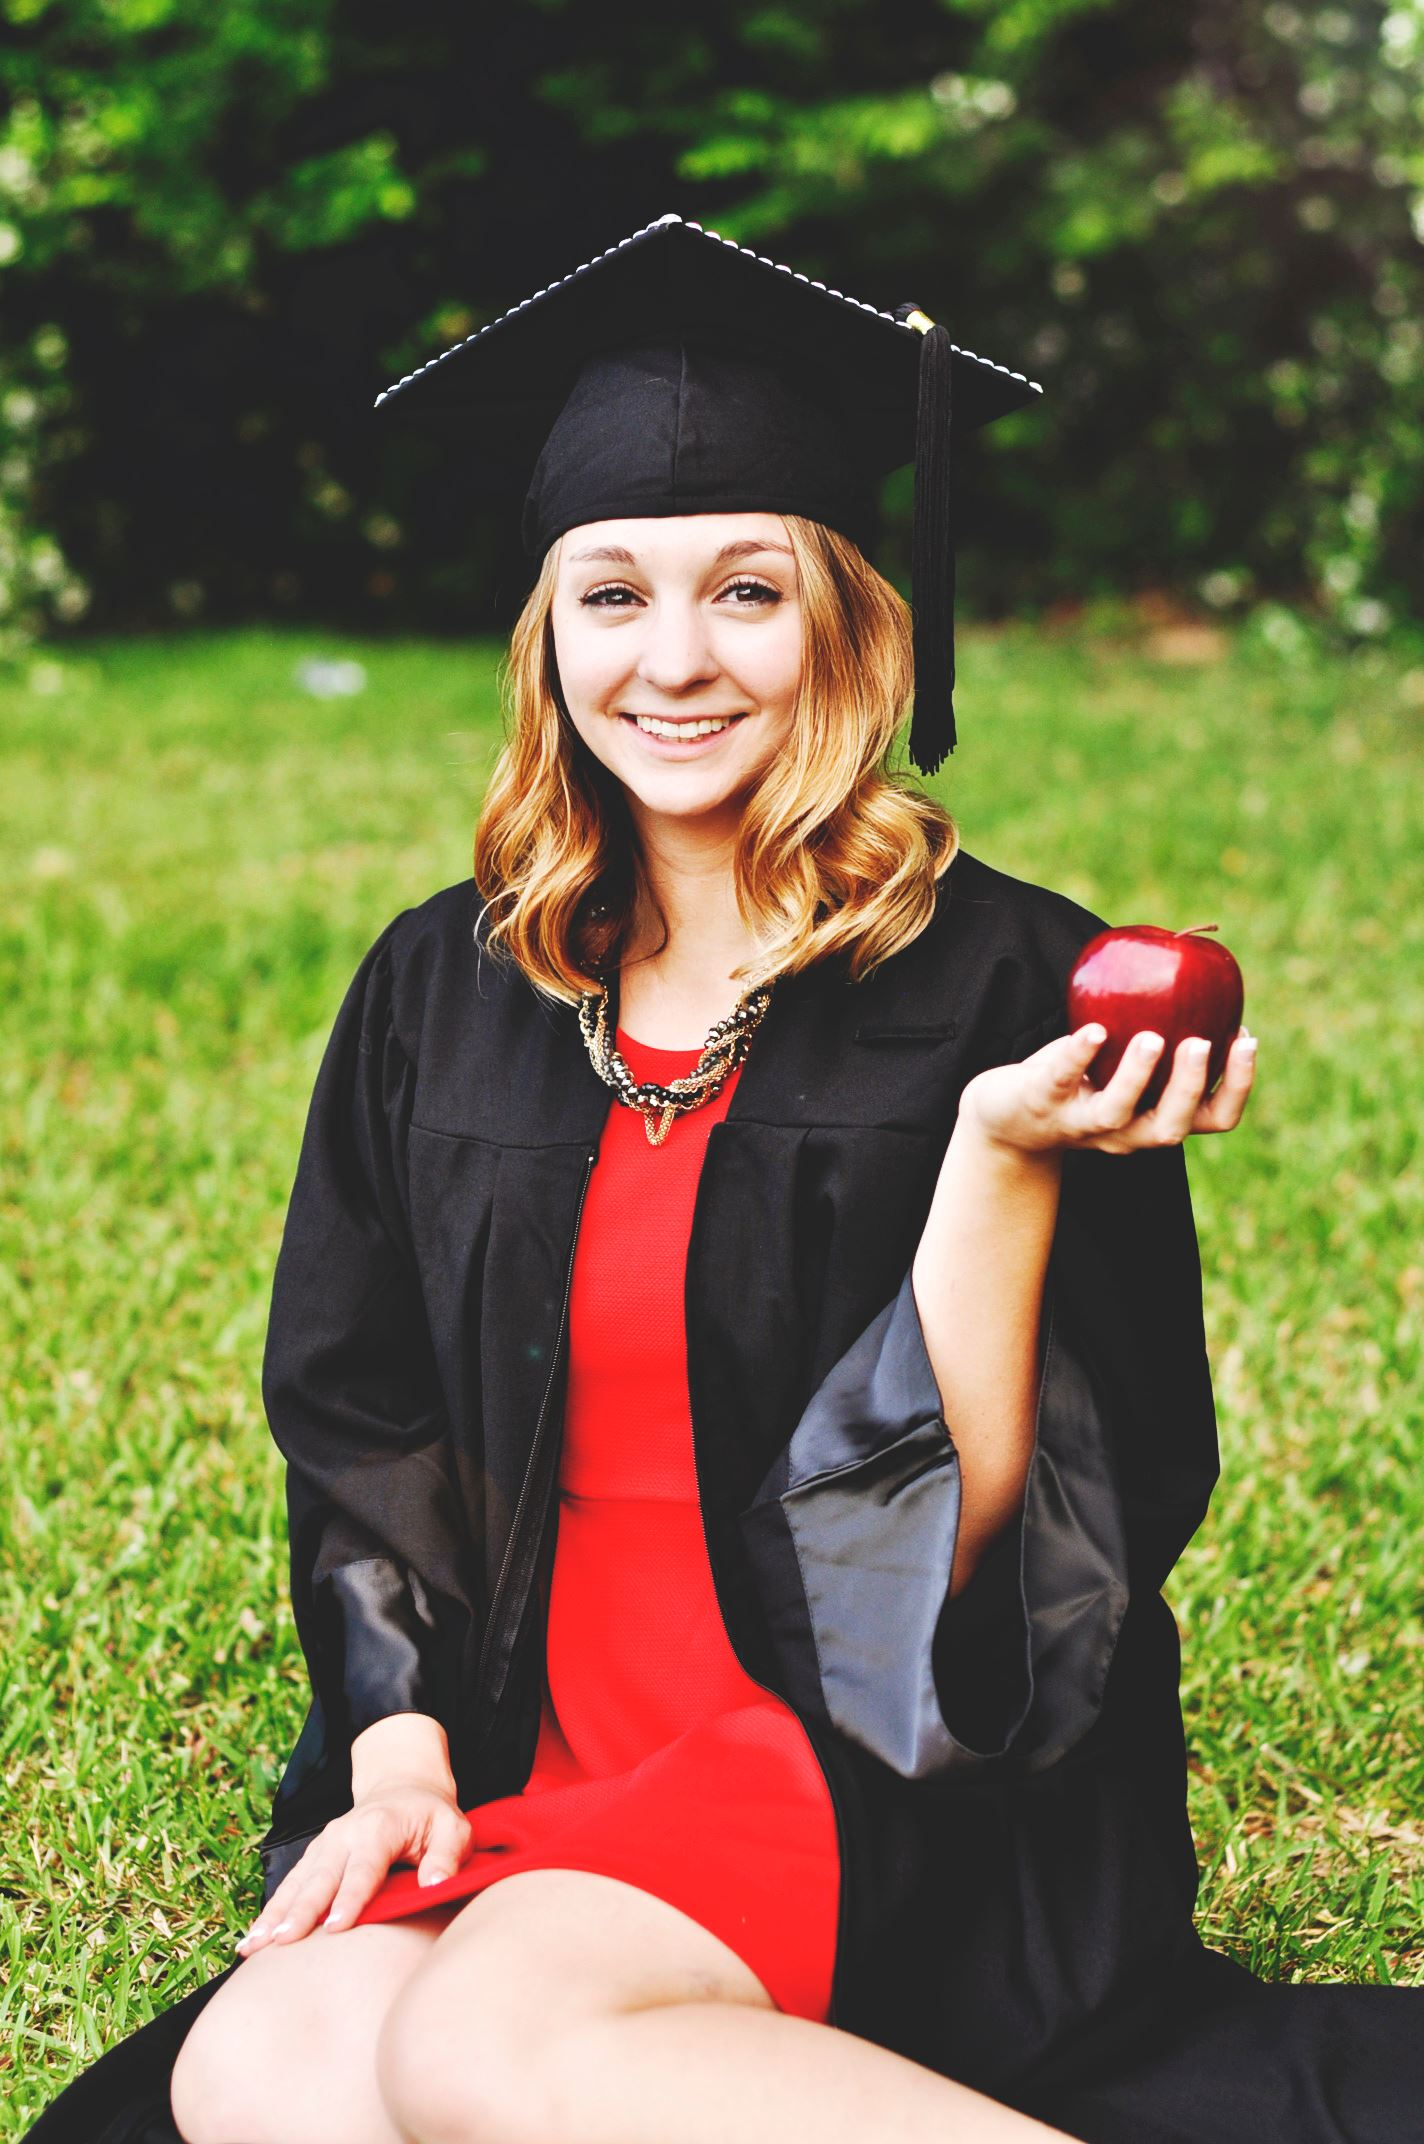 Woman in graduation gown holding an apple.